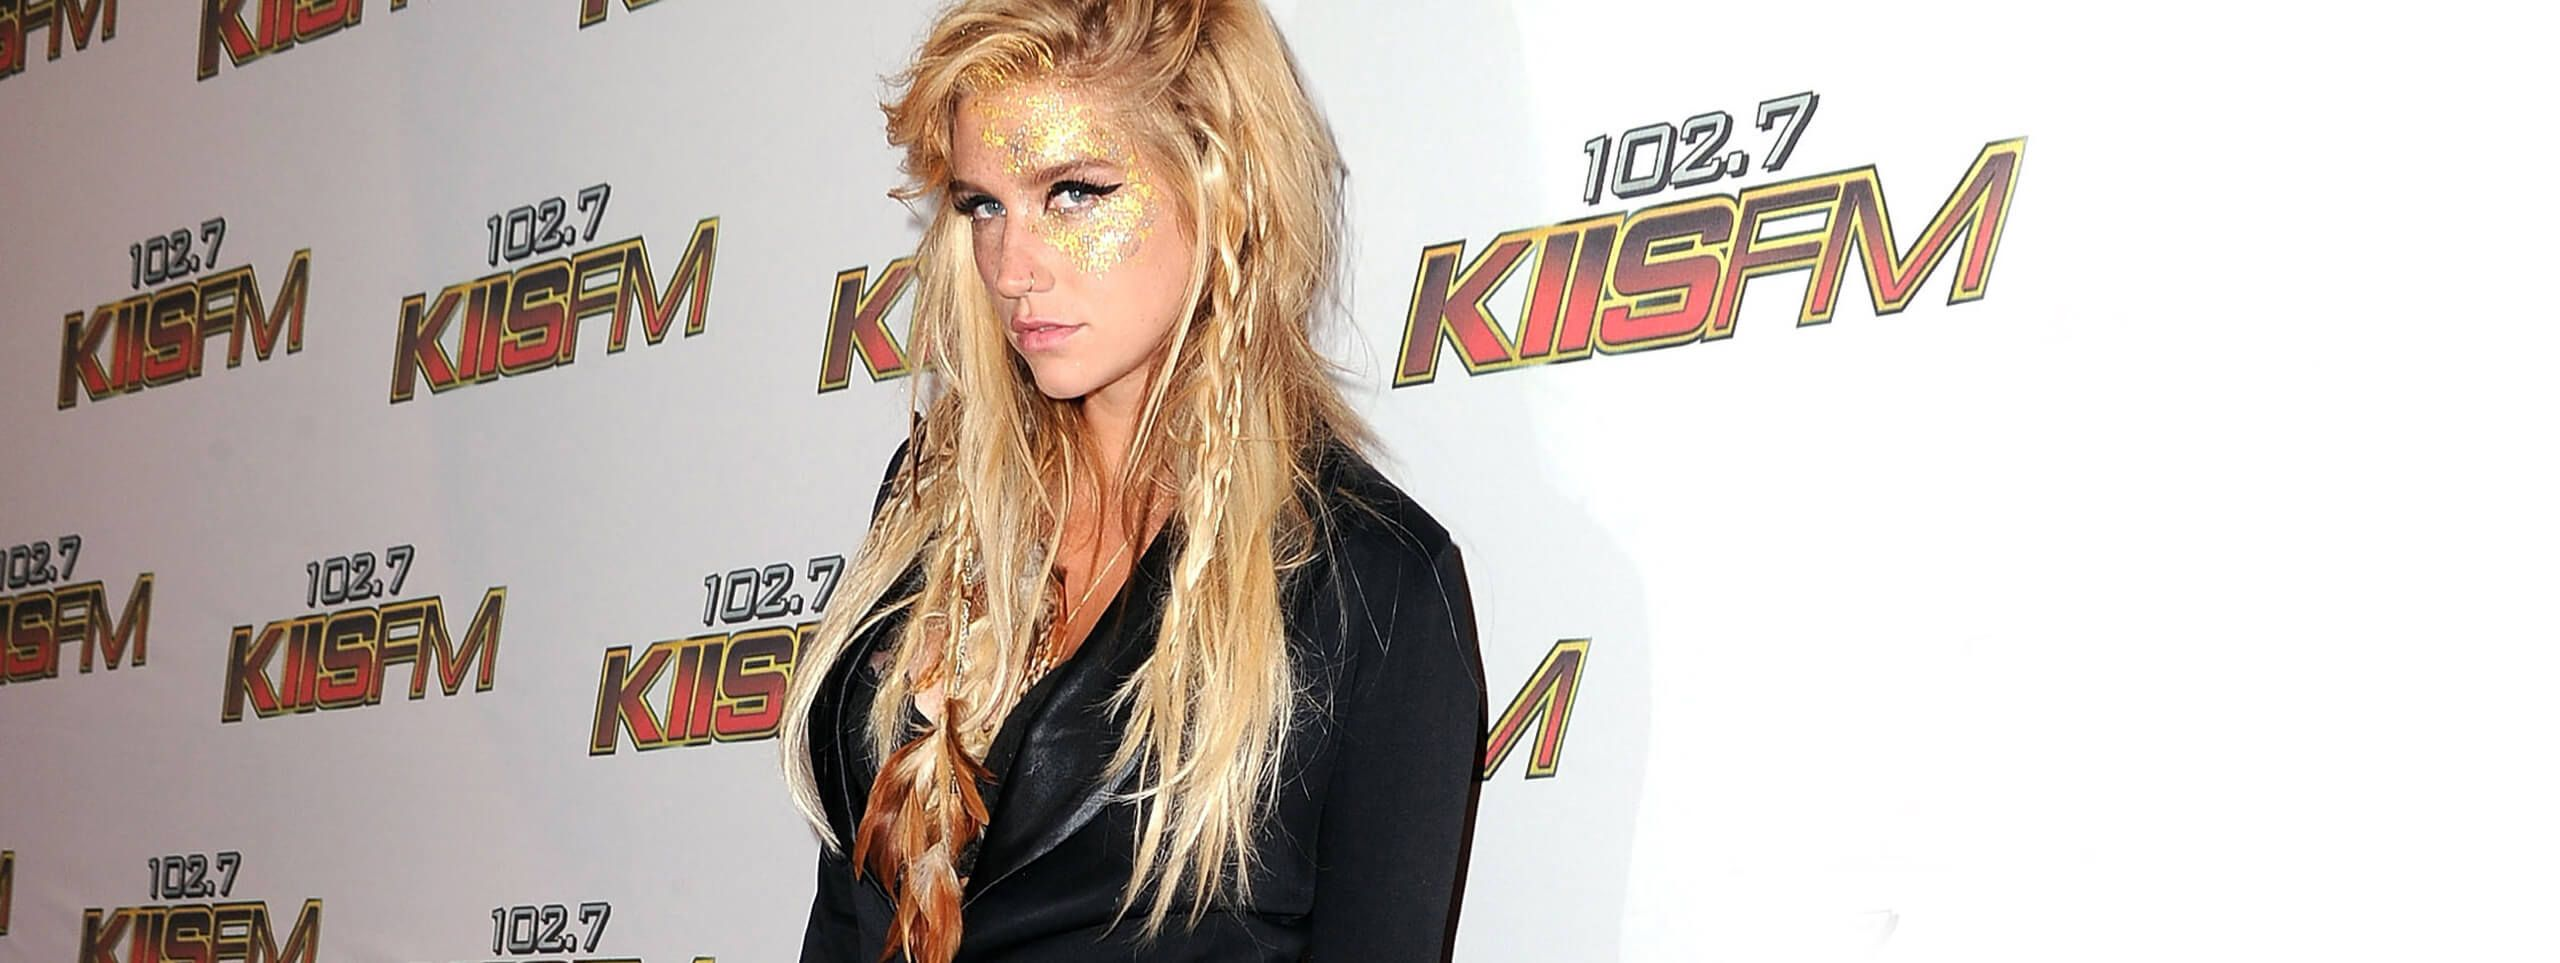 Model with glitter on her face and feathered hairstyle